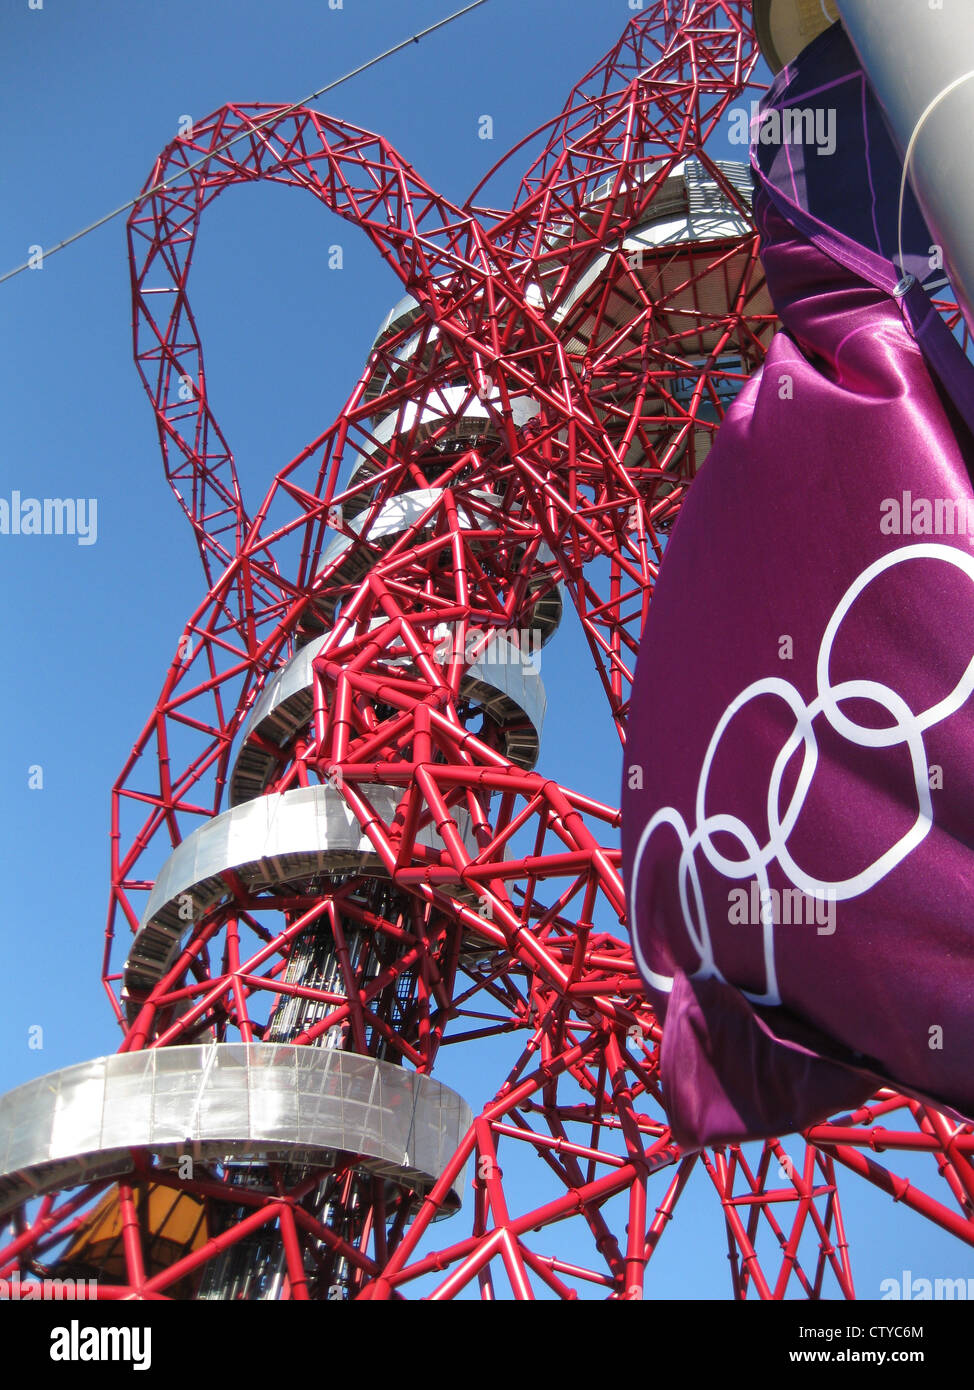 Arcelor Mittal Orbit with Olympic flag - Stock Image